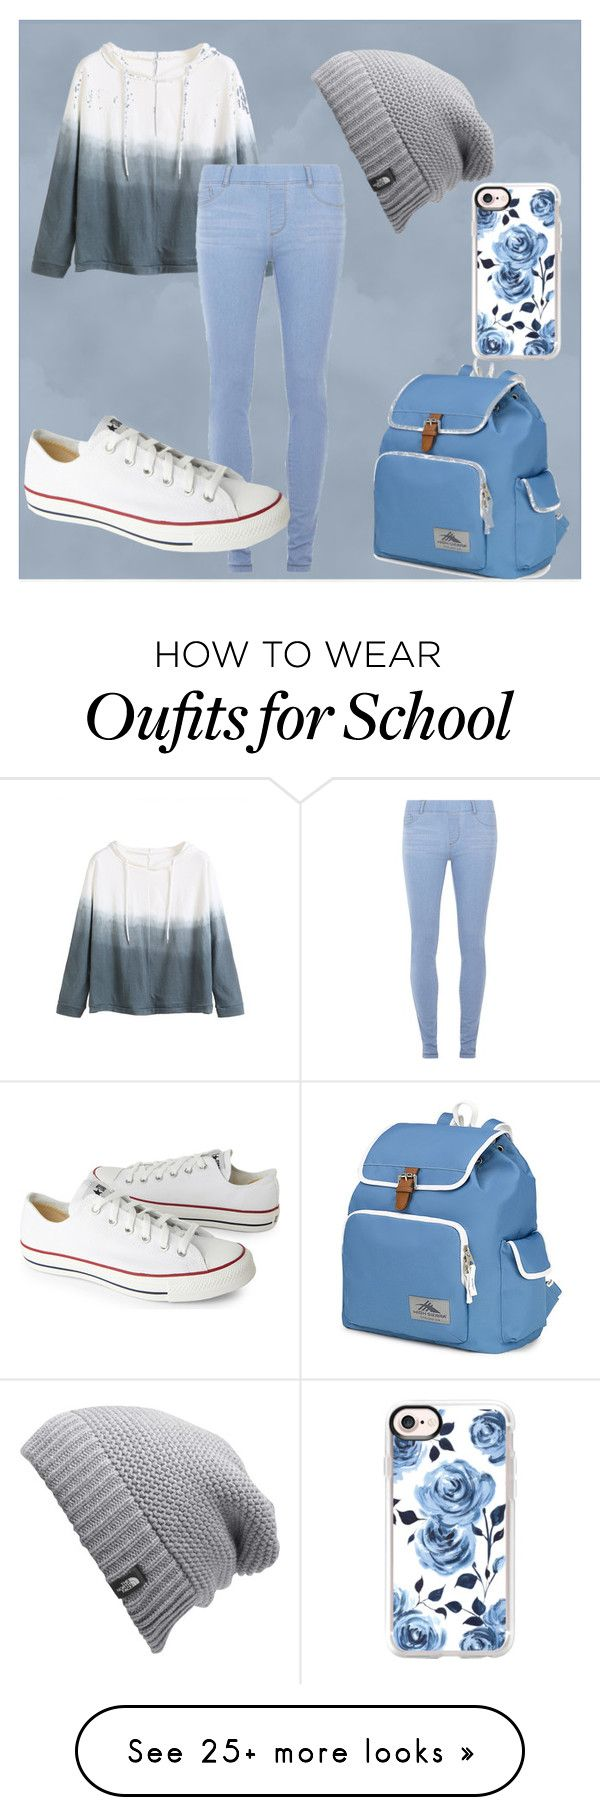 """Causally Blue"" by emokitty350 on Polyvore featuring WithChic, Dorothy Perkins, Converse, High Sierra, Casetify and The North Face"